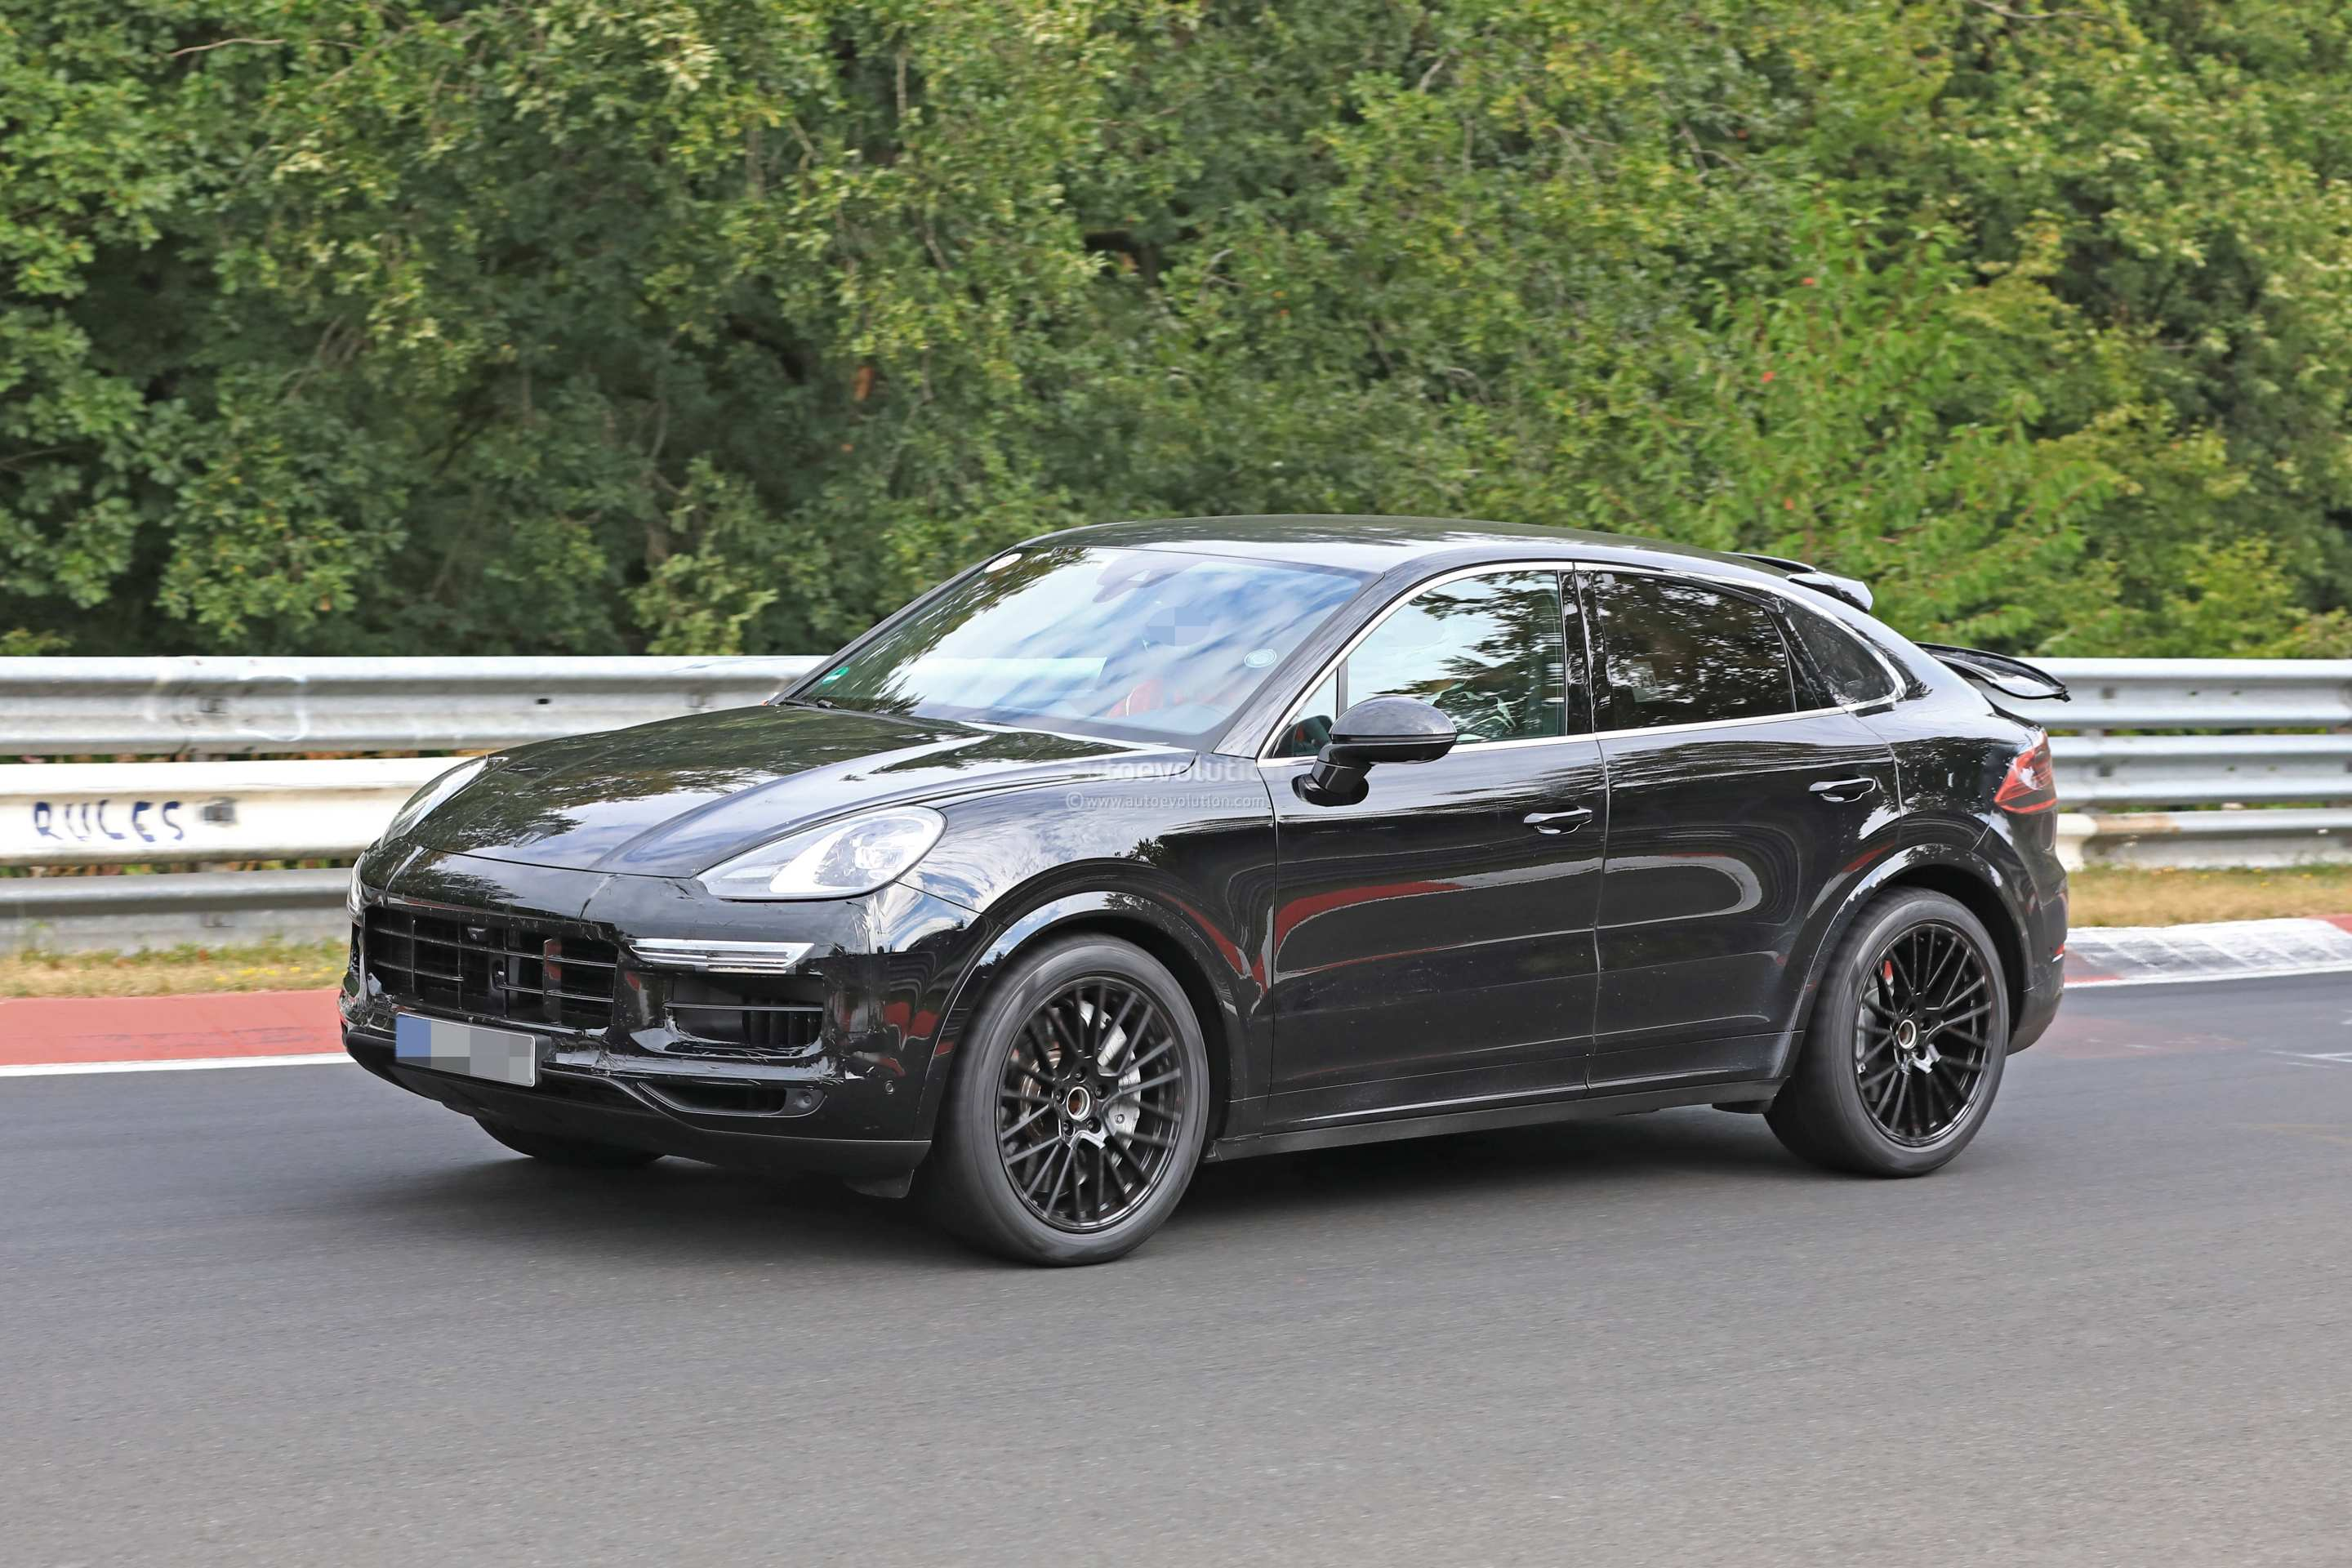 54 A 2020 Porsche Cayenne Research New